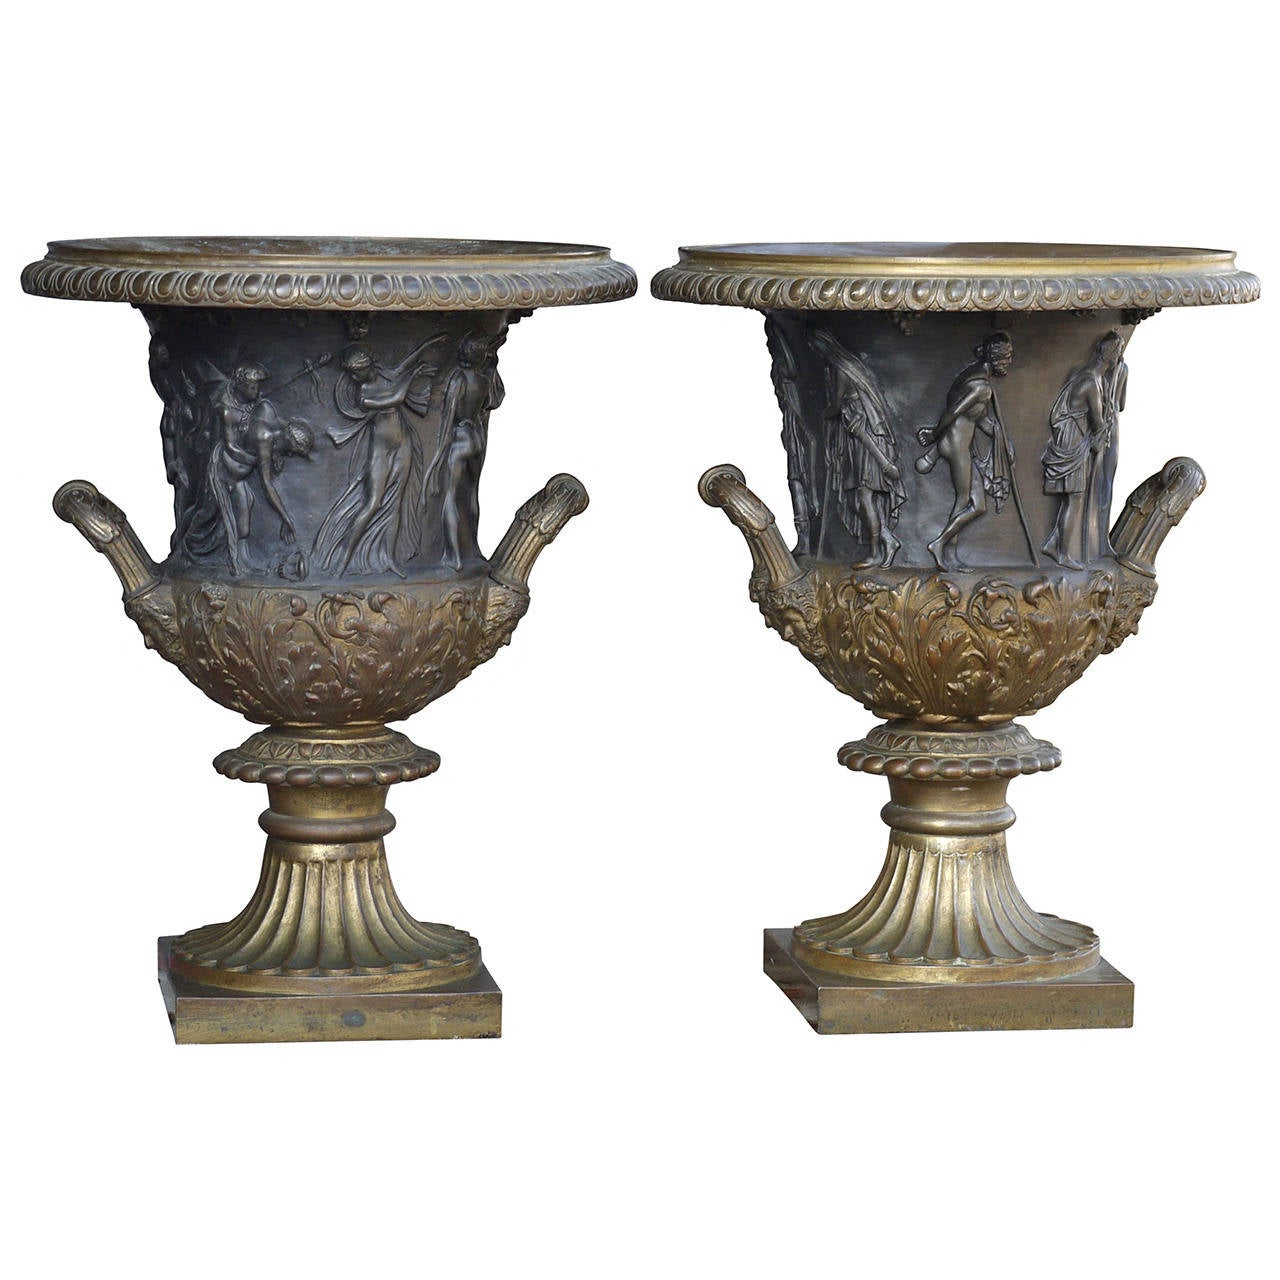 Pair of 19th Century Bronze Campana Urns After the Medici and Borghese Models For Sale